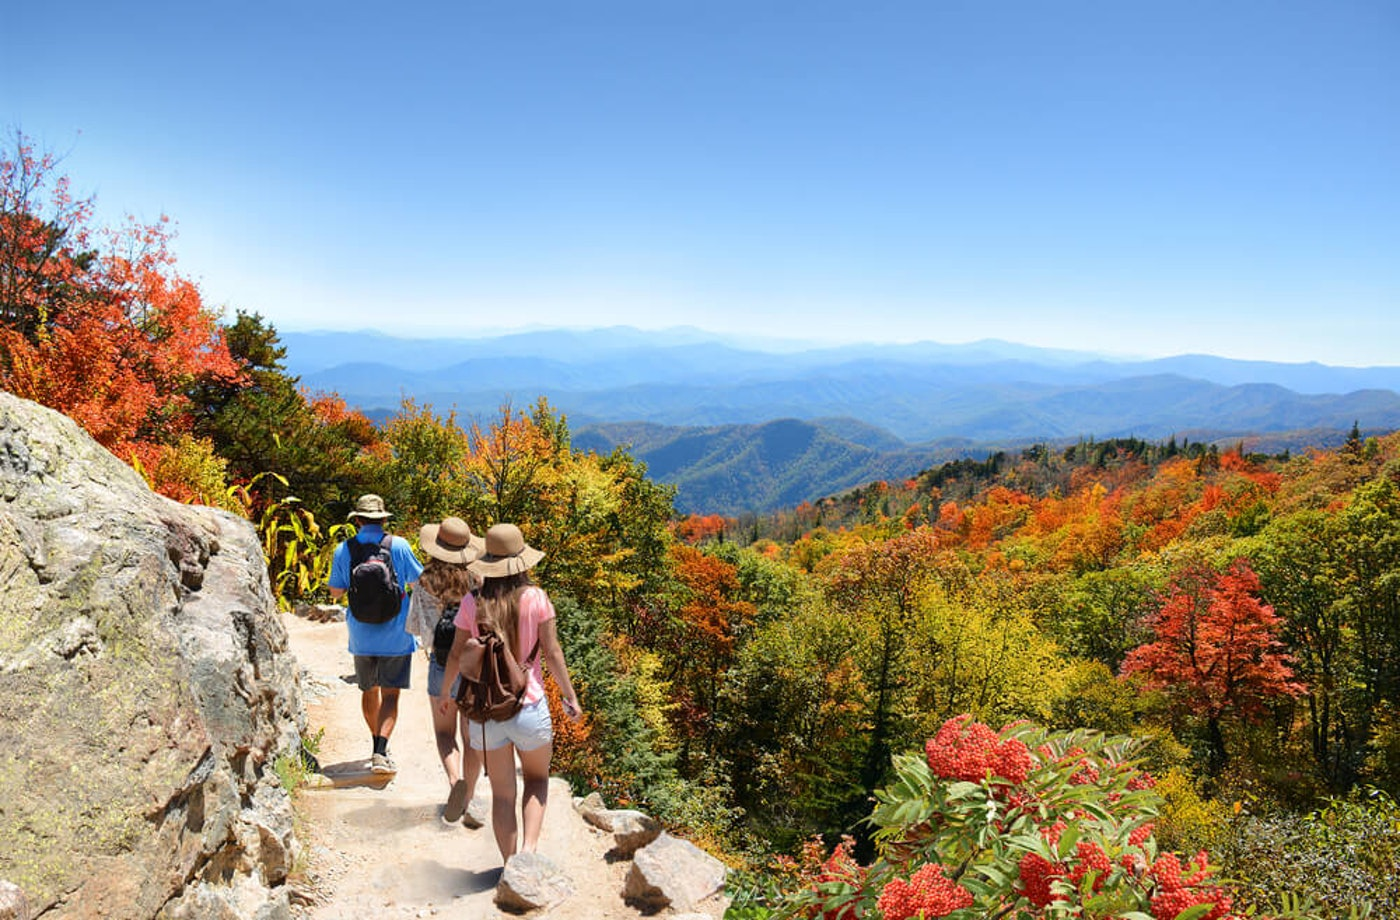 Hikers in the Blue Ridge Mountains of North Carolina near Asheville. (Image via Shutterstock)